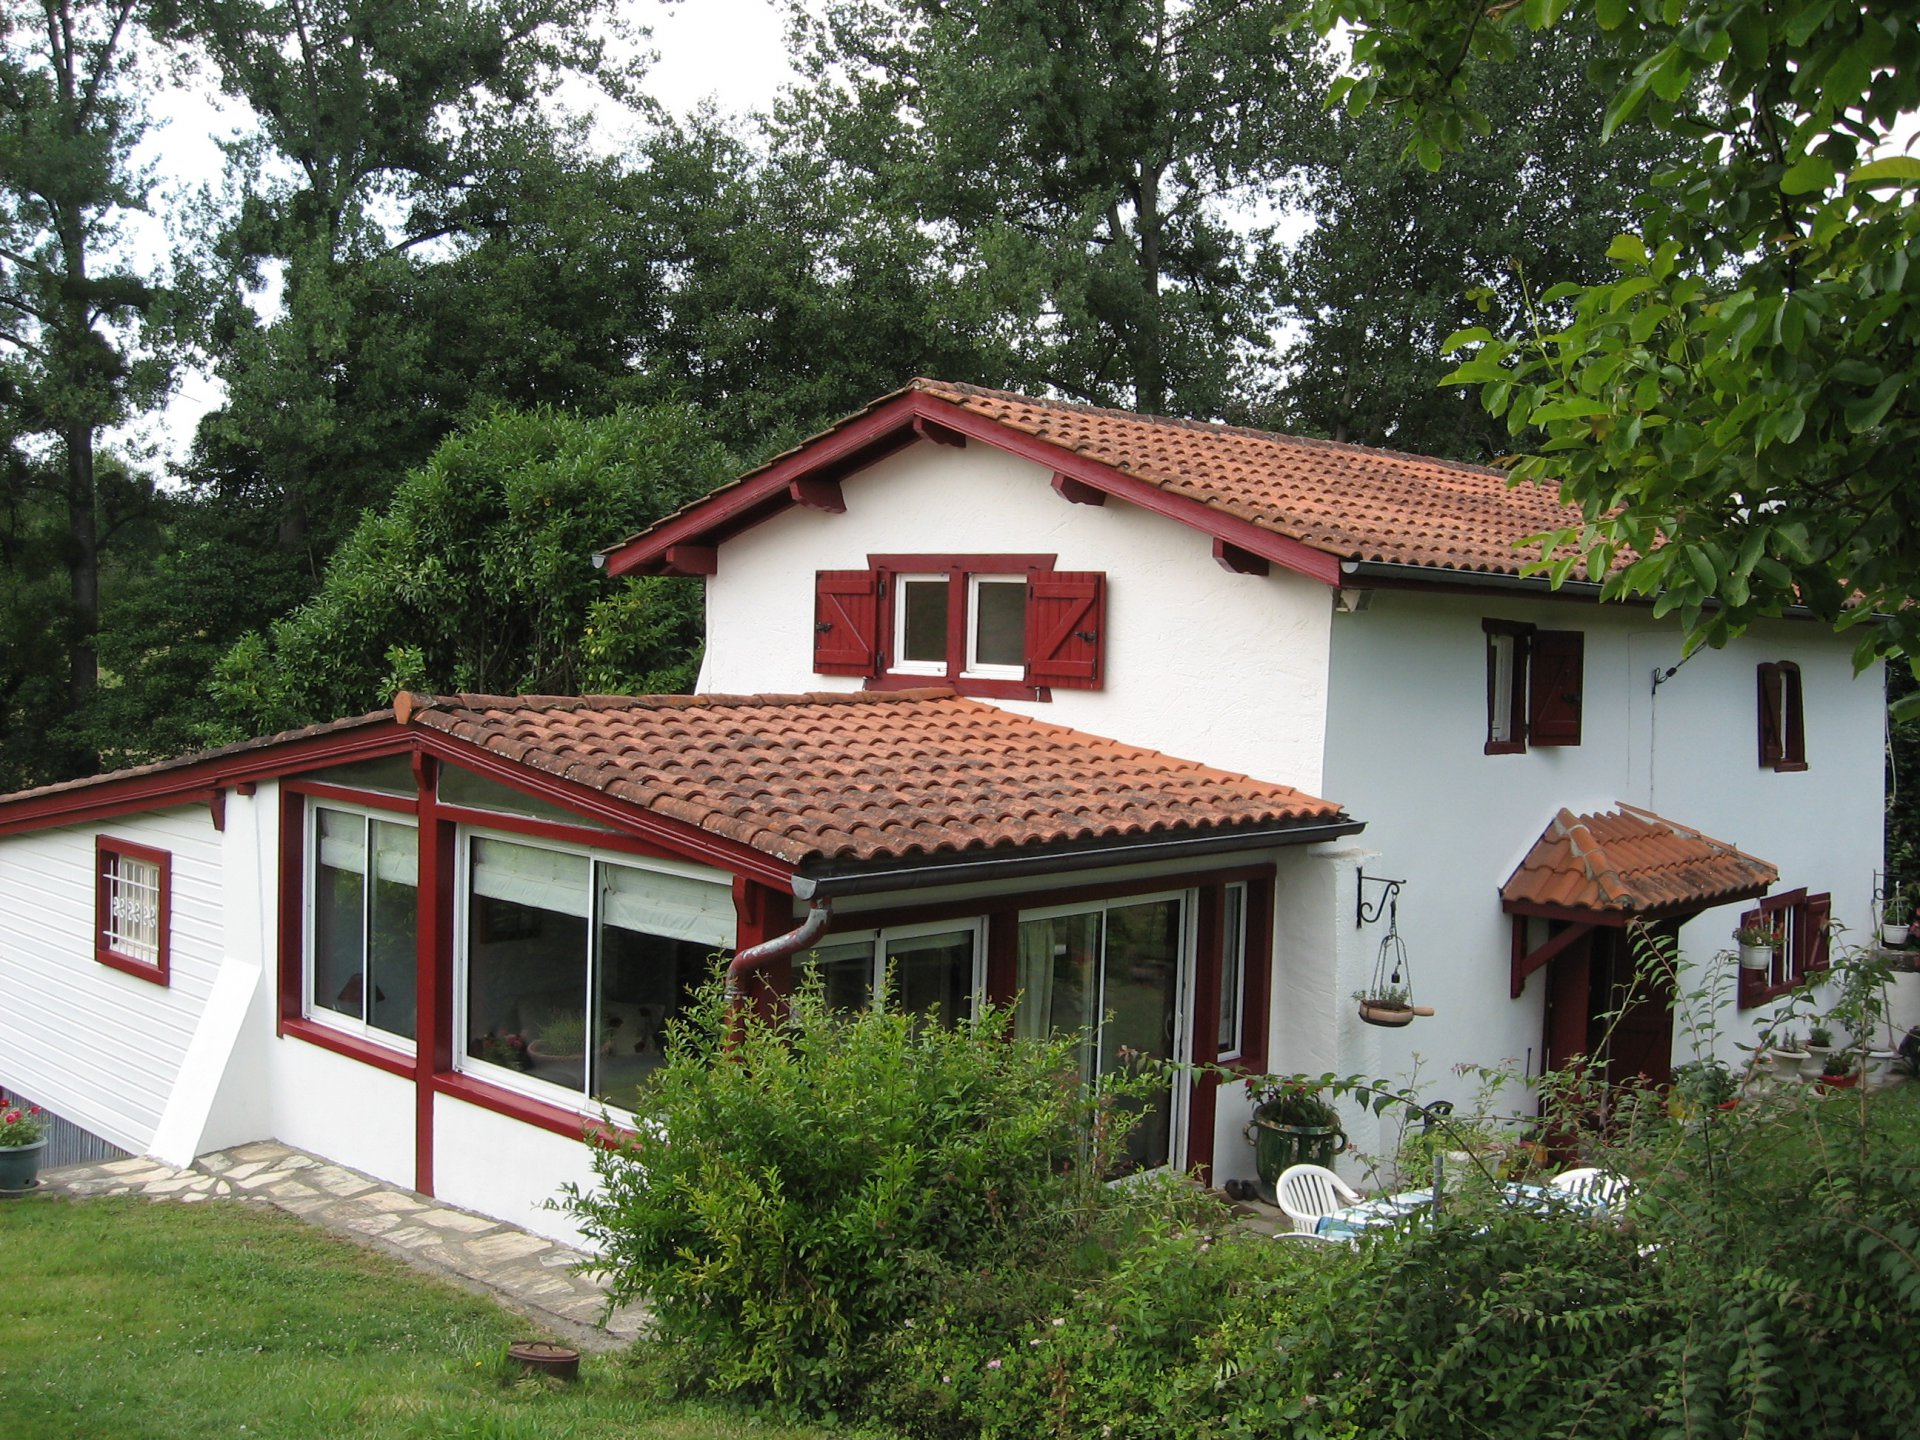 Renovated Basque property with swimming pool, set in 2200m² of garden